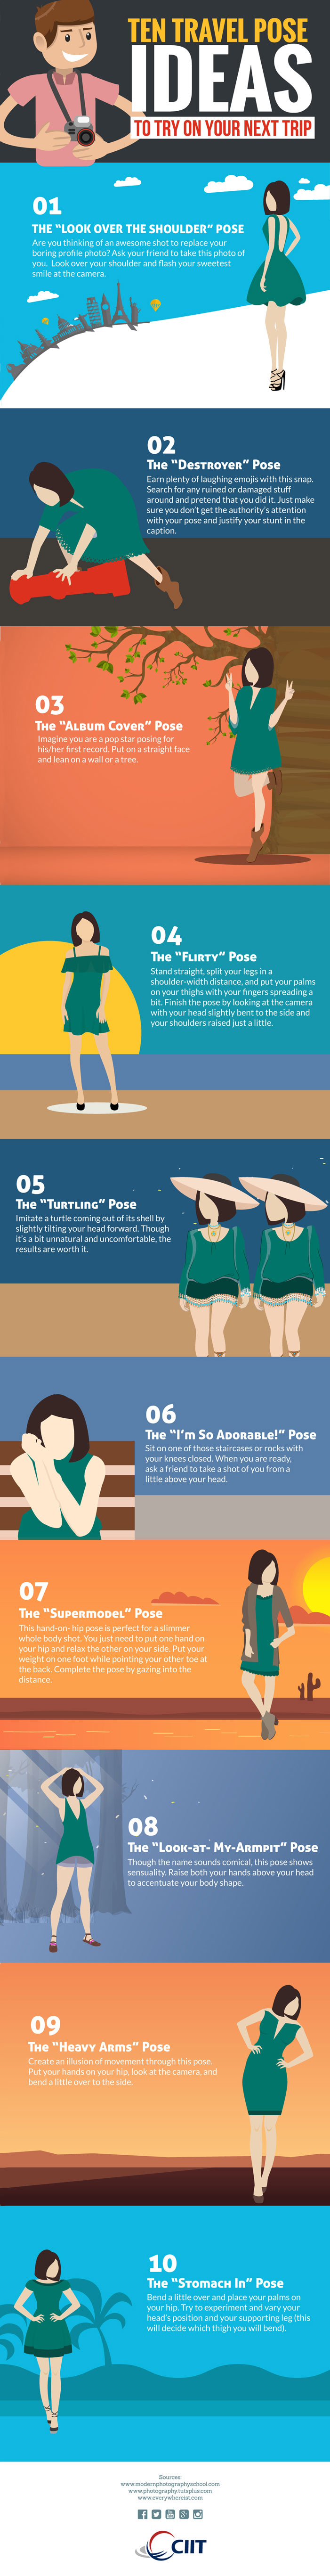 travel-pose-ideas